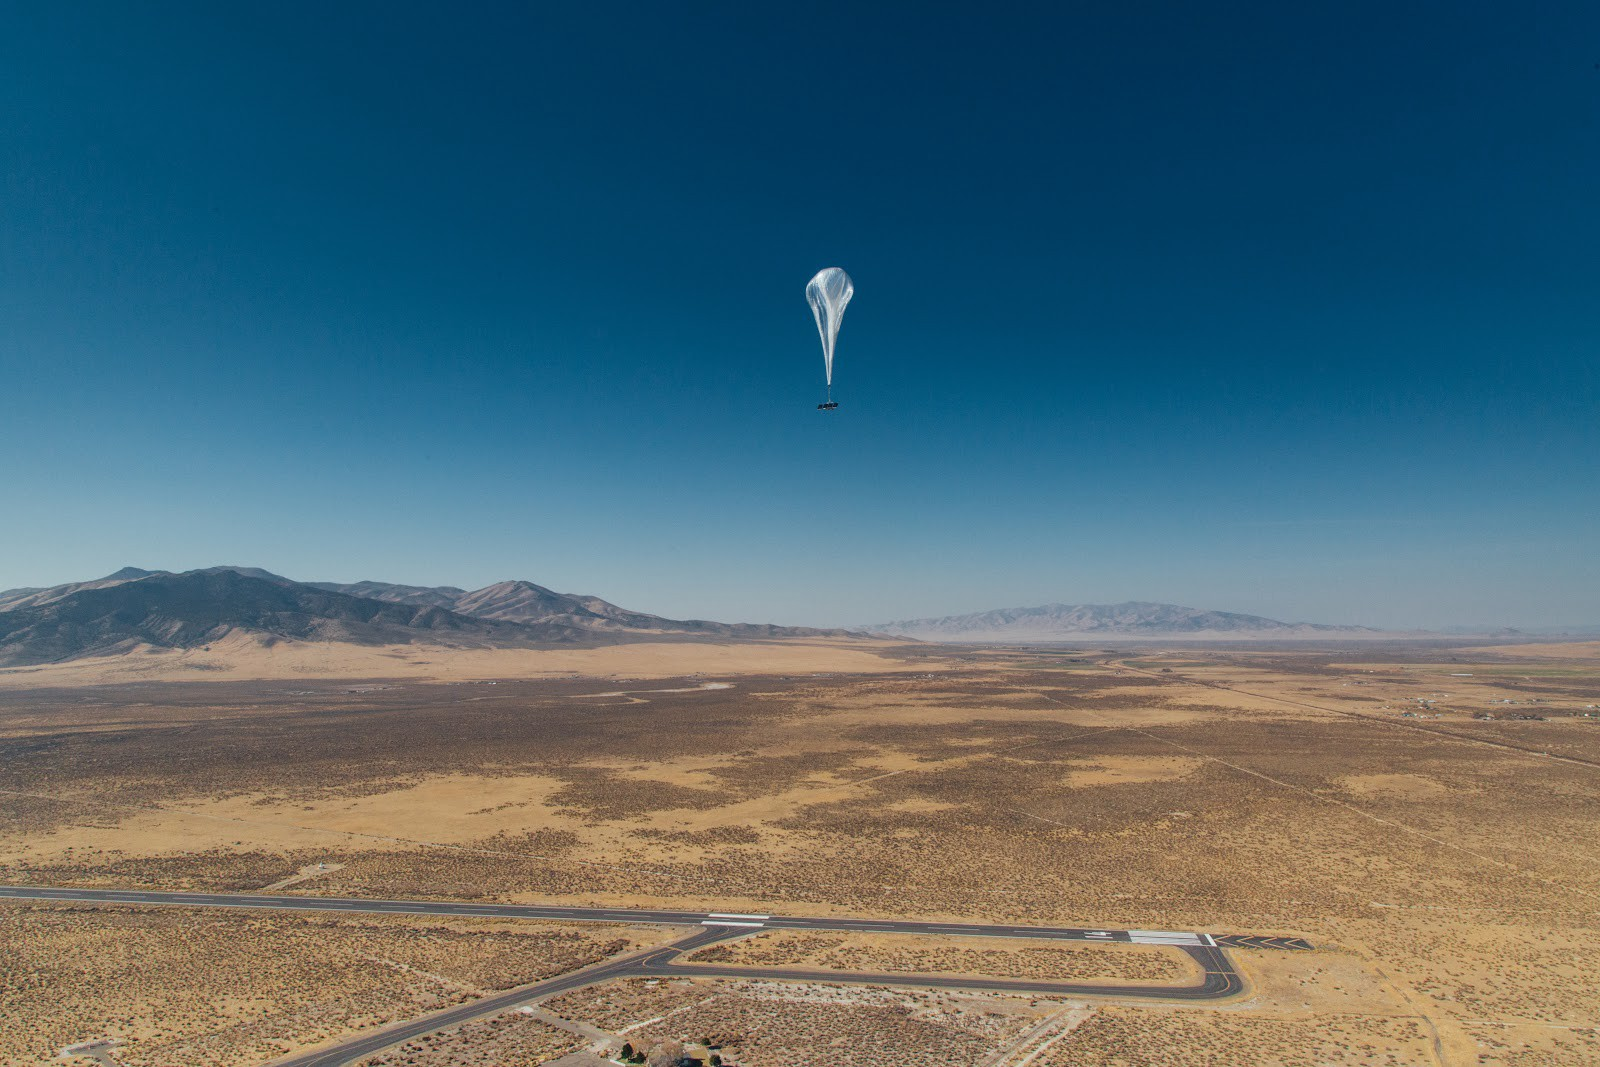 Turning on Project Loon in Puerto Rico - The Team at X